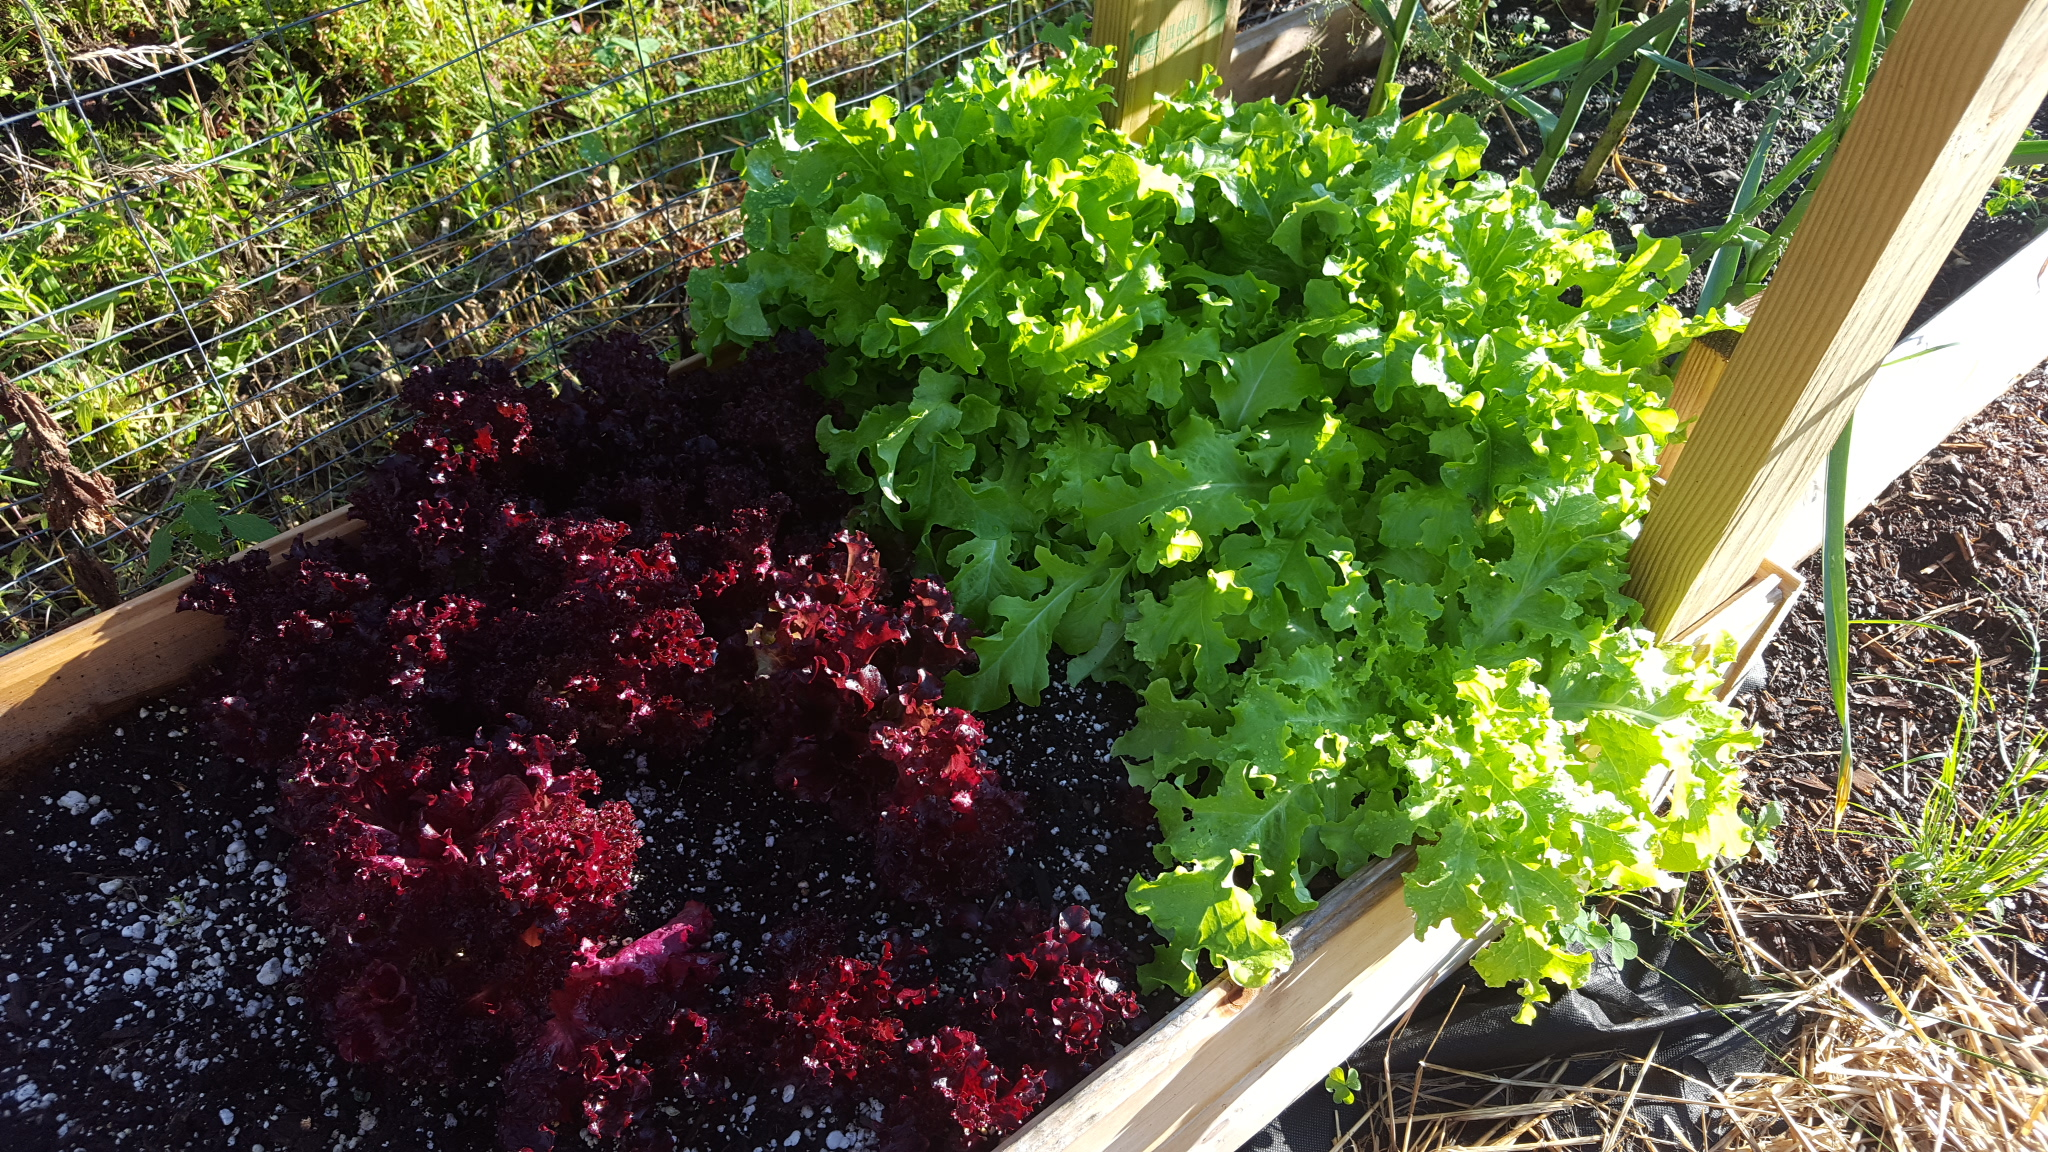 Green and red lettuce, basking in the sun!